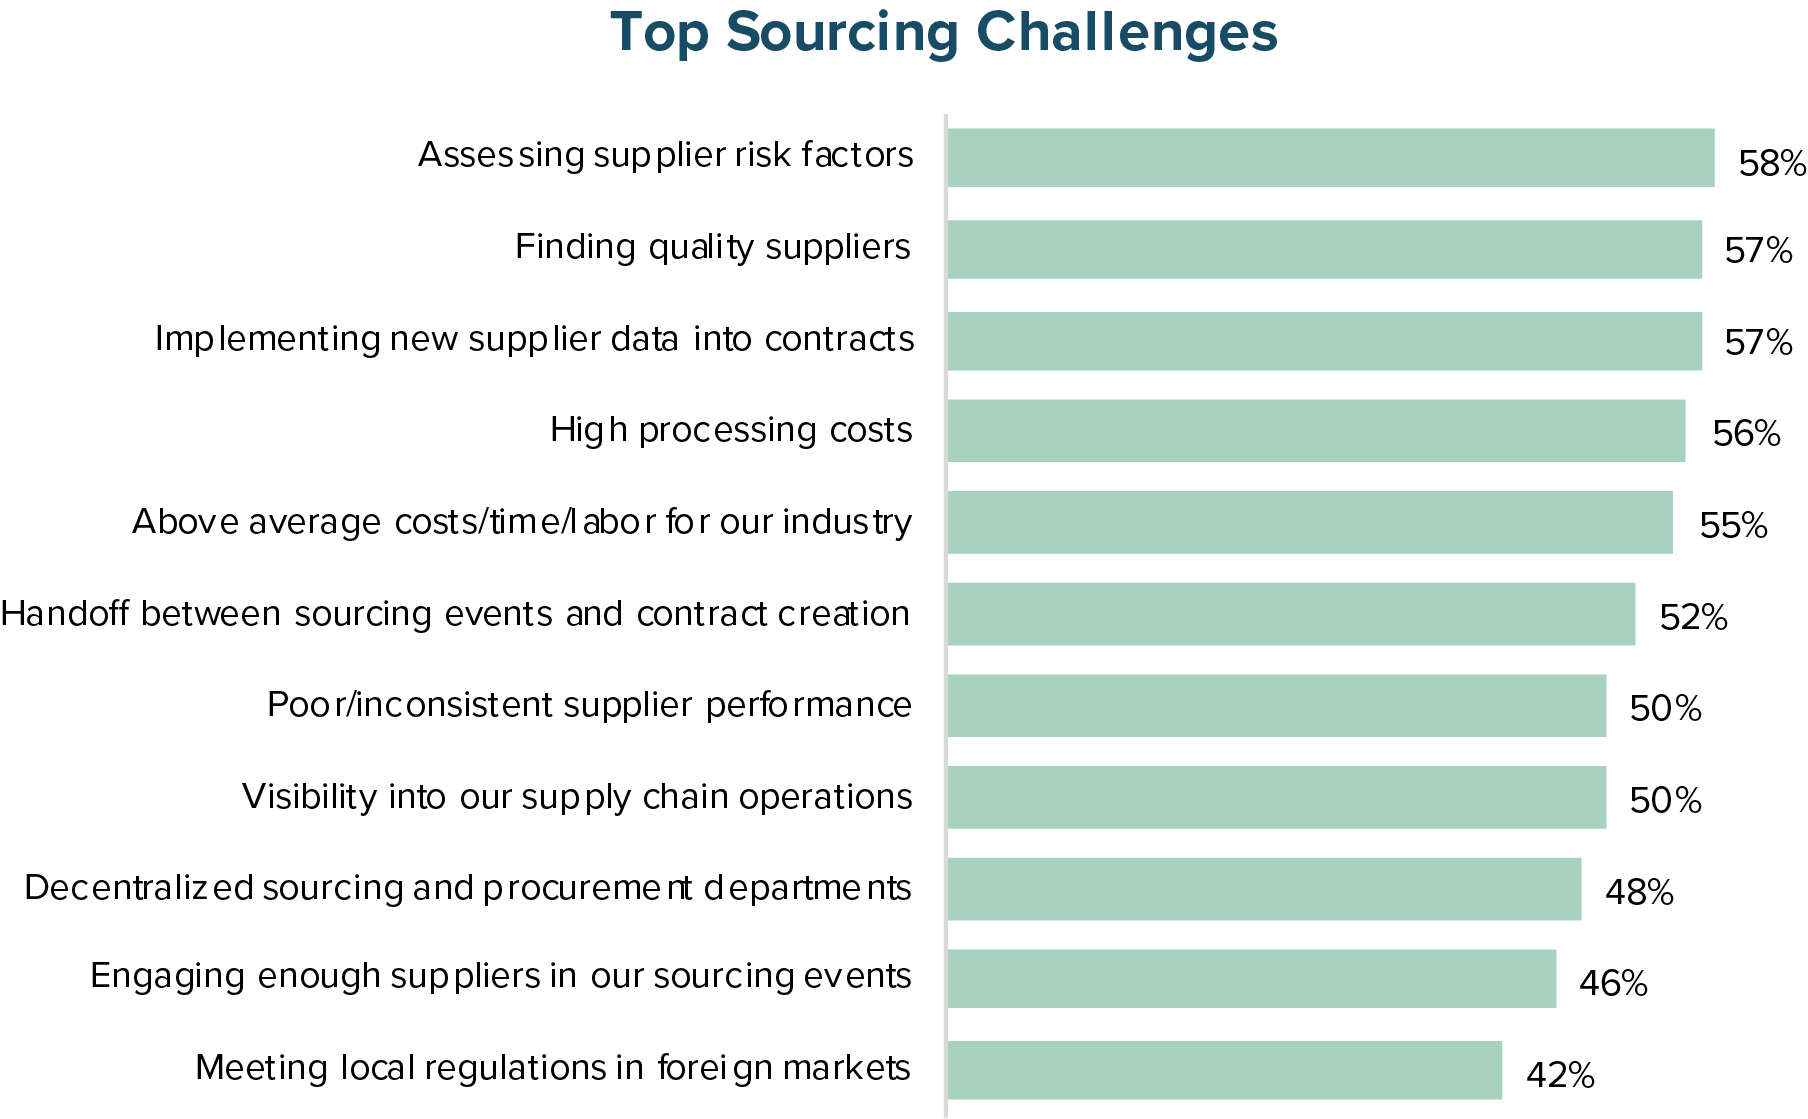 Top Sourcing Challenges